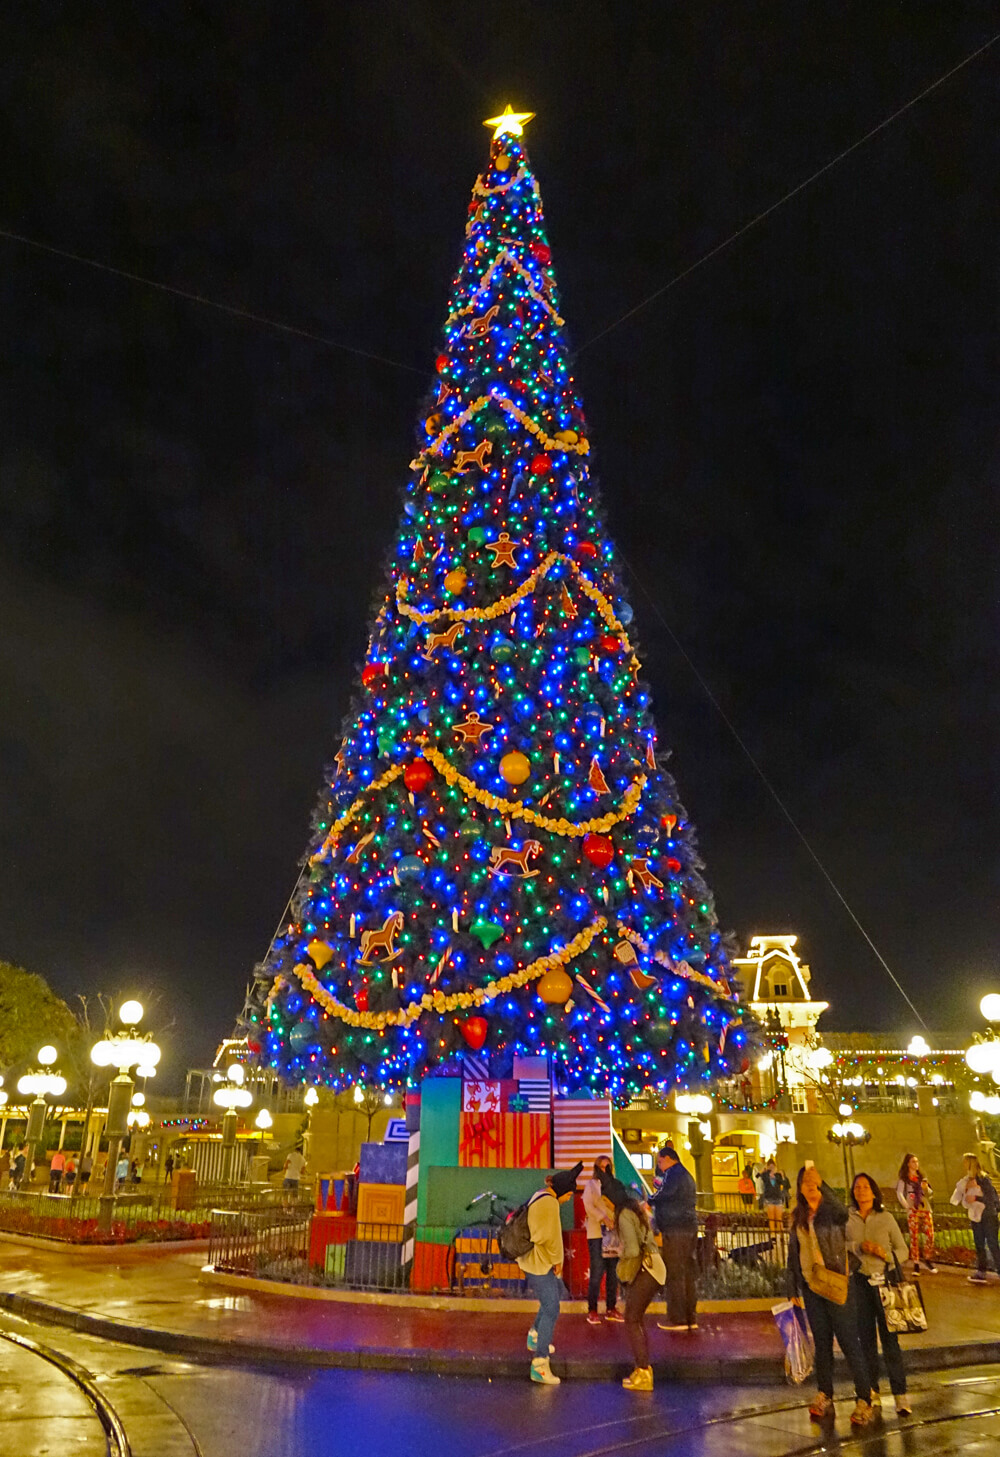 disney world holiday events 2018 magic kingdom tree - Disneyworld Christmas